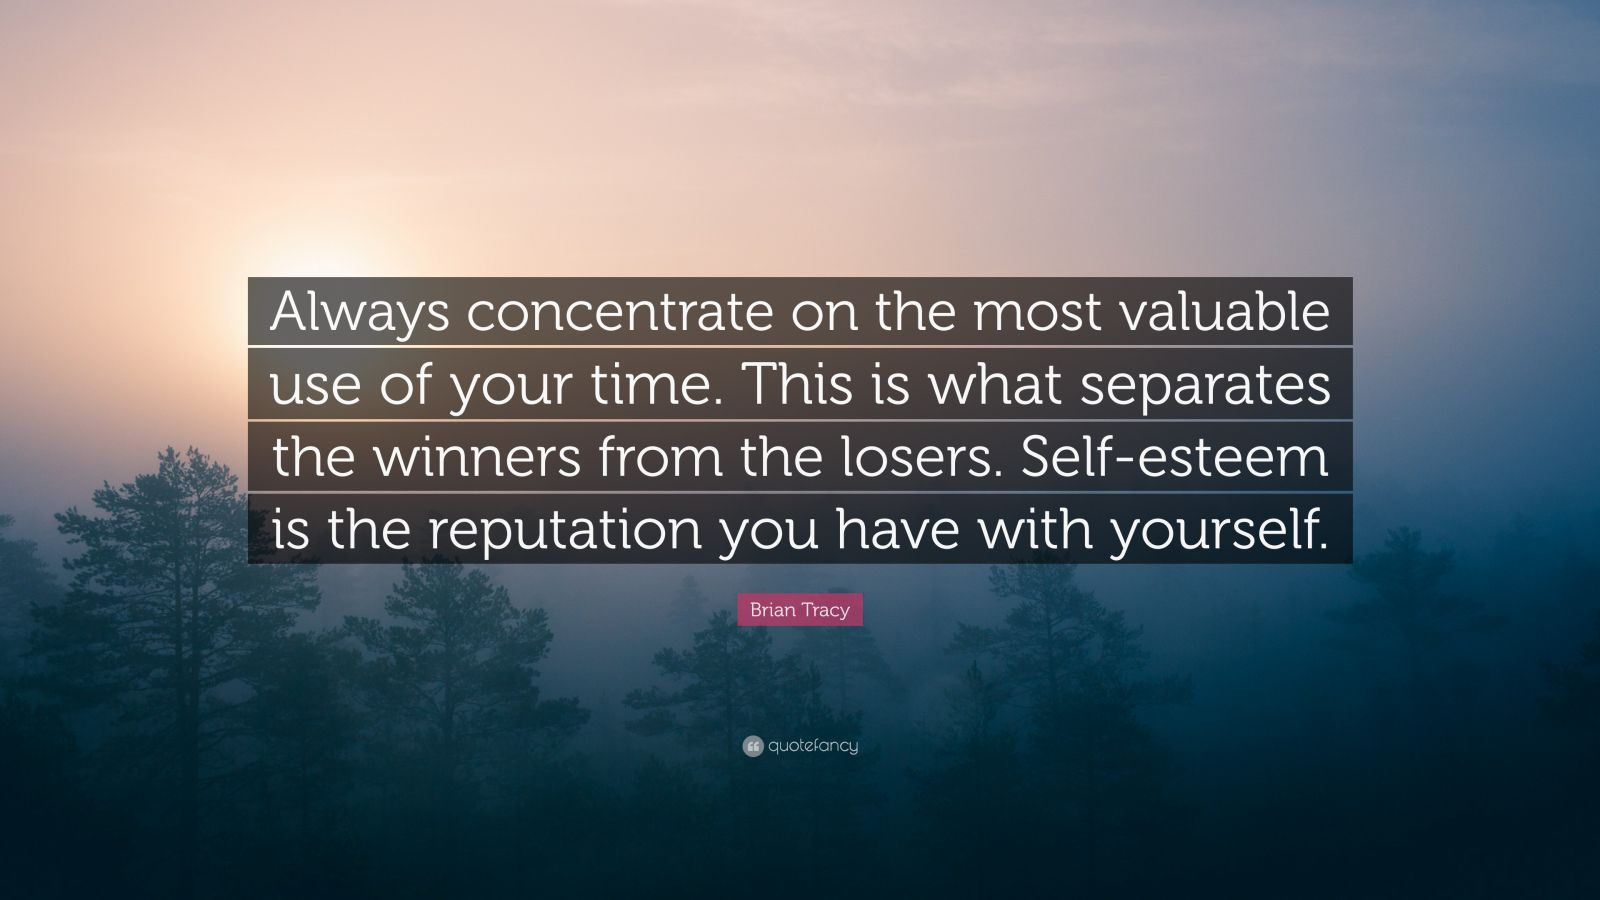 """Brian Tracy Quote: """"Always concentrate on the most valuable use of your time. This is what separates the winners from the losers. Self-esteem is the reputation you have with yourself."""""""